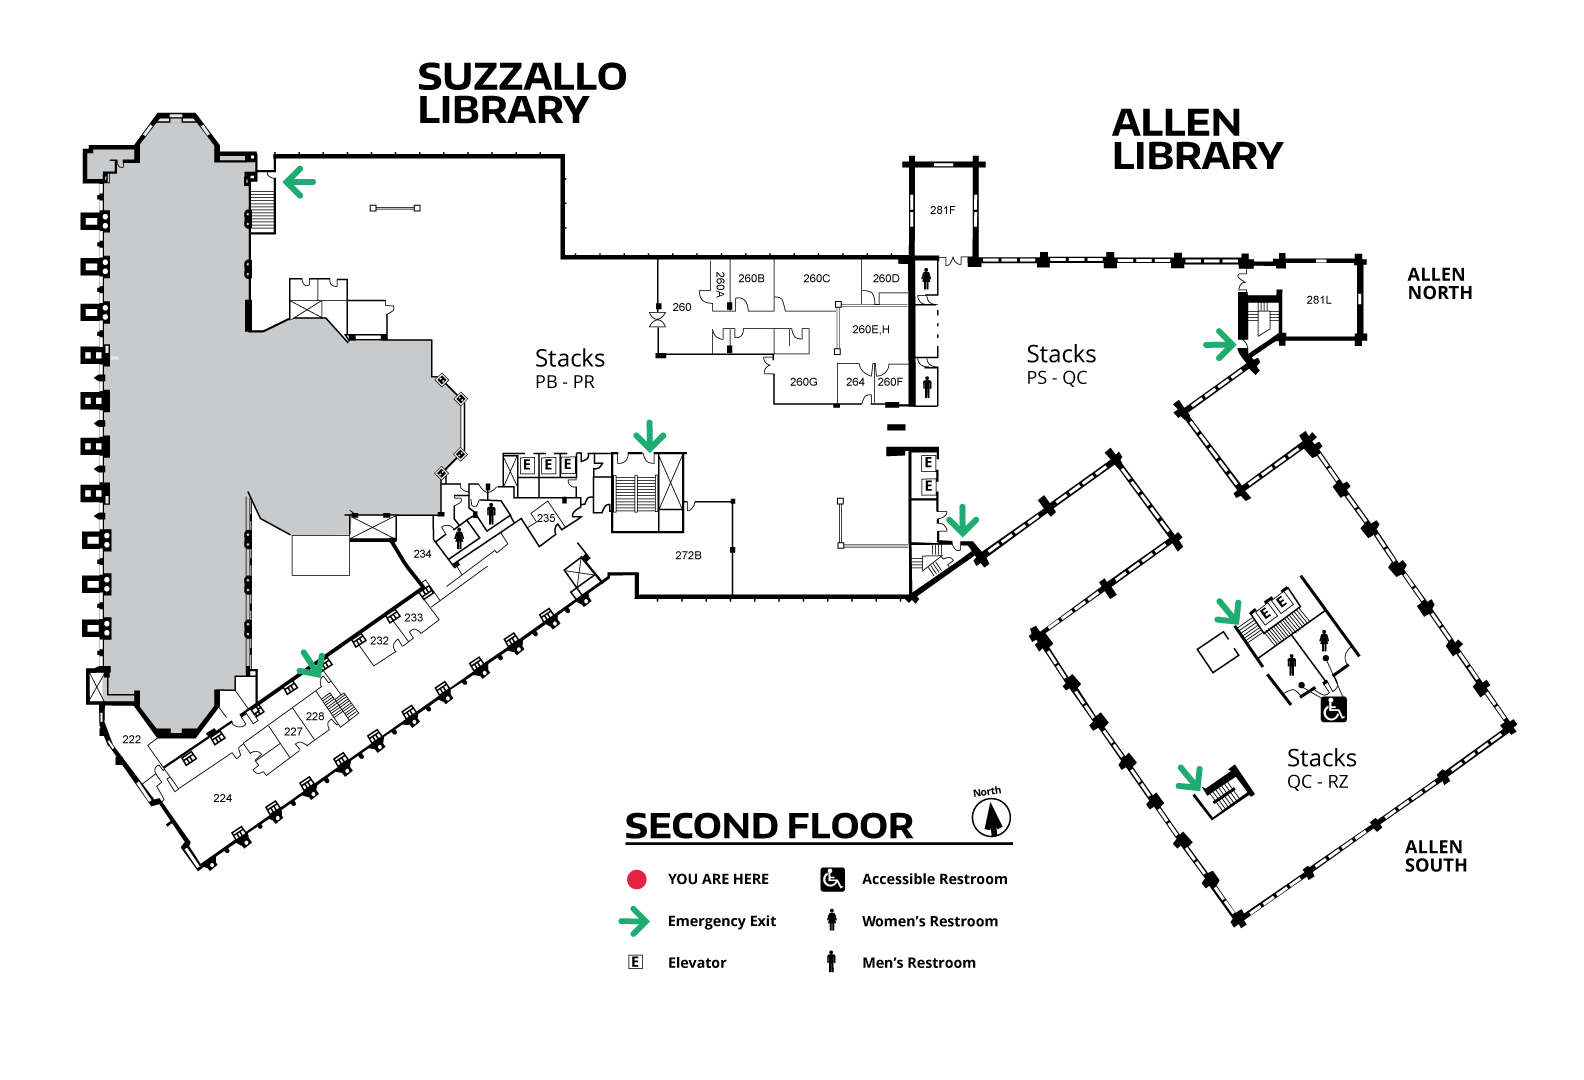 Suzzallo/Allen Second Floor Map